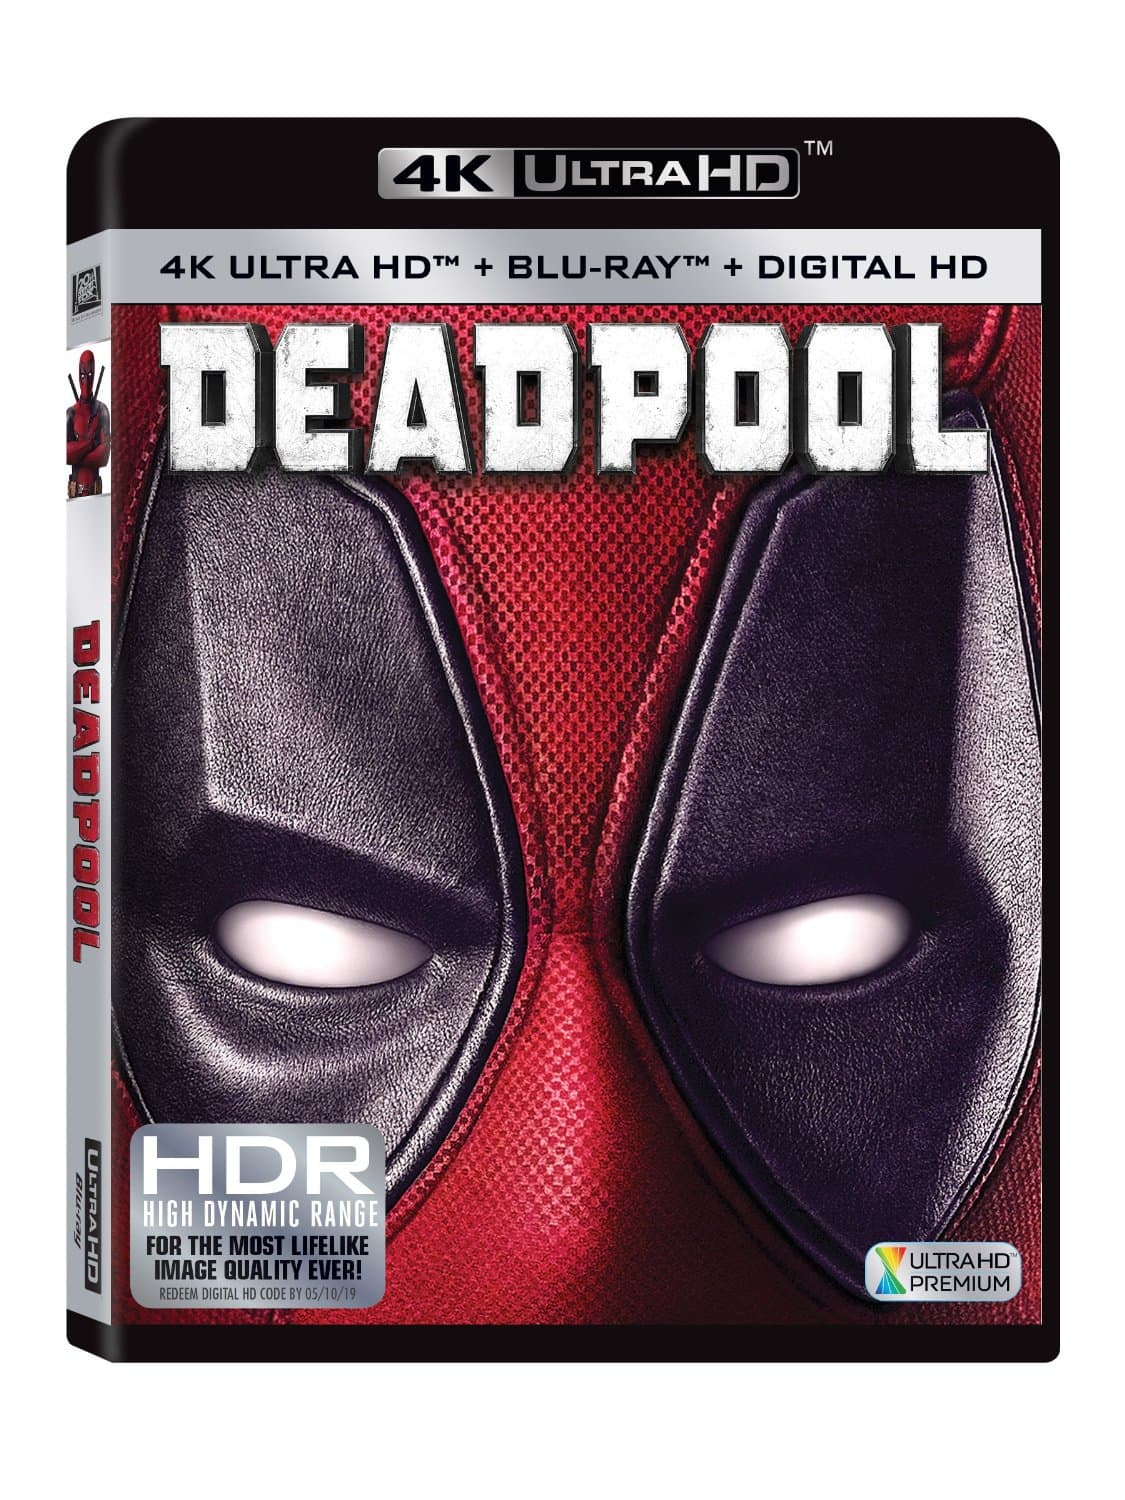 FOX 4K Ultra HD Blu-ray Sale - Deadpool, X-Men, Revenant, Eddie the Eagle and more $18.19 + Free ship $25+